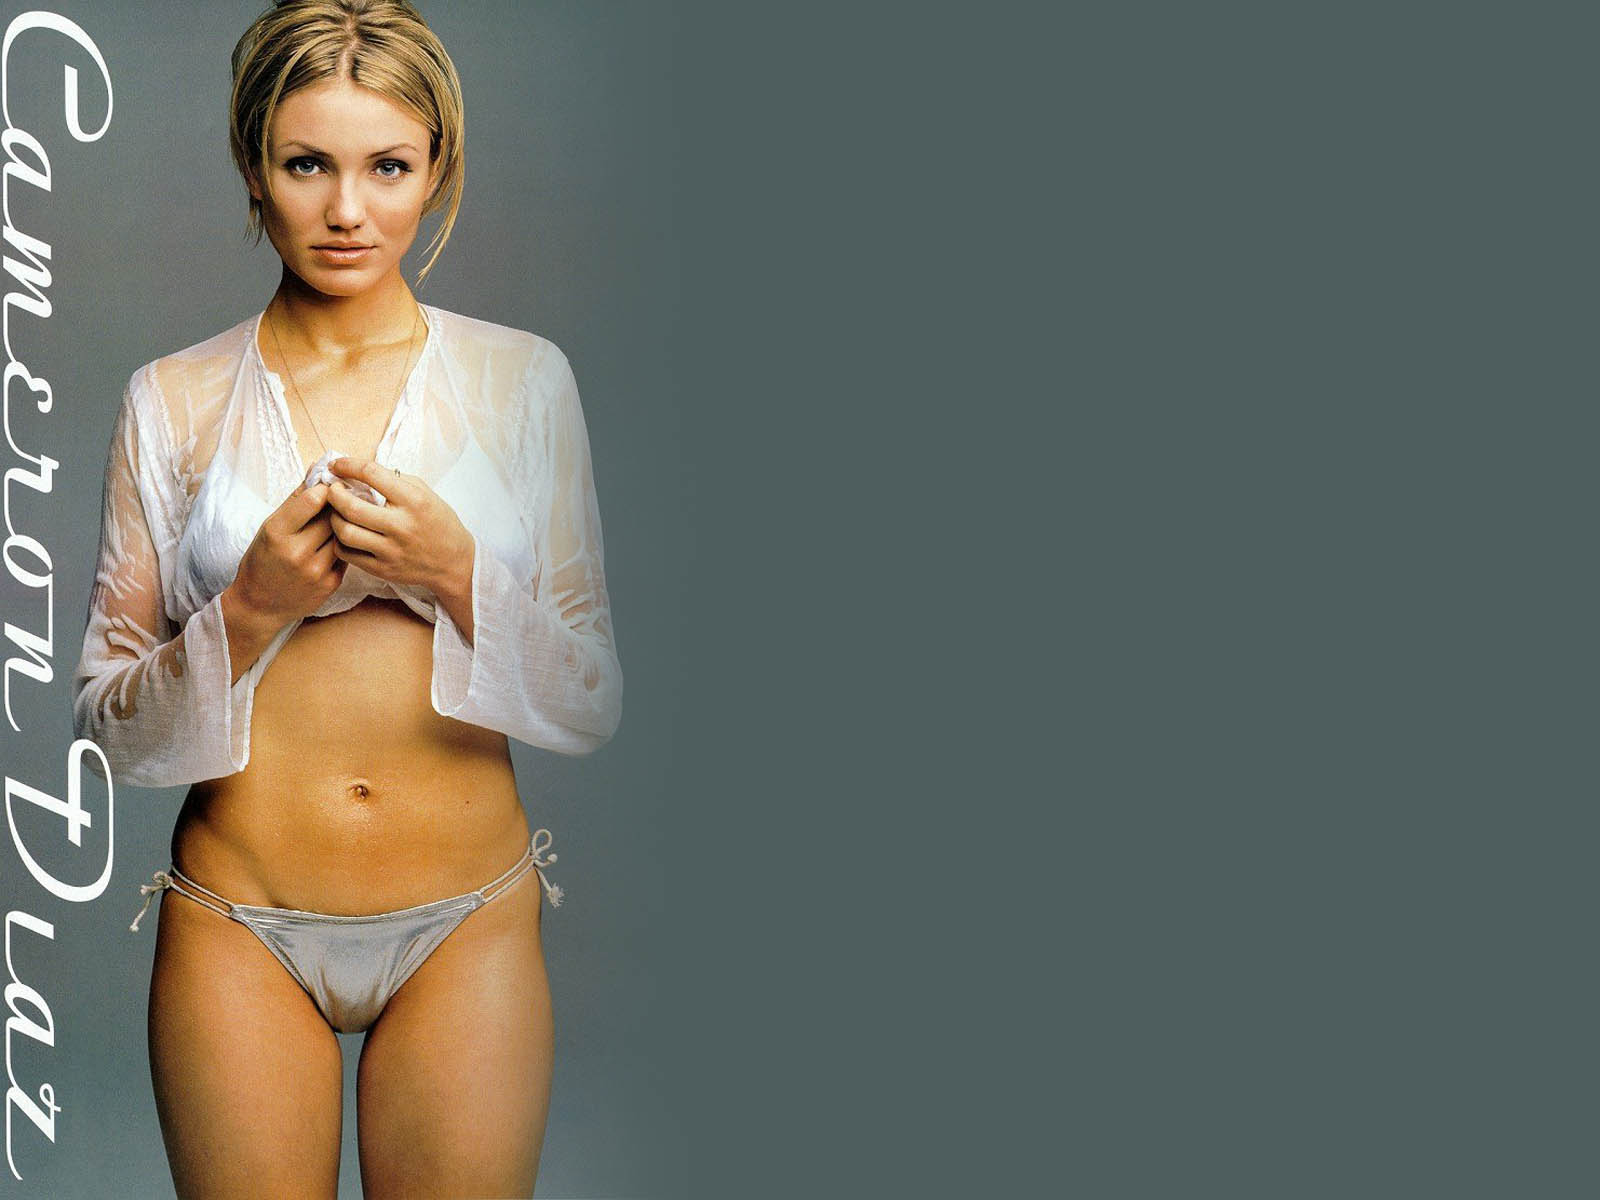 Cameron Diaz Desktop Wallpapers for Widescreen HD 1600x1200